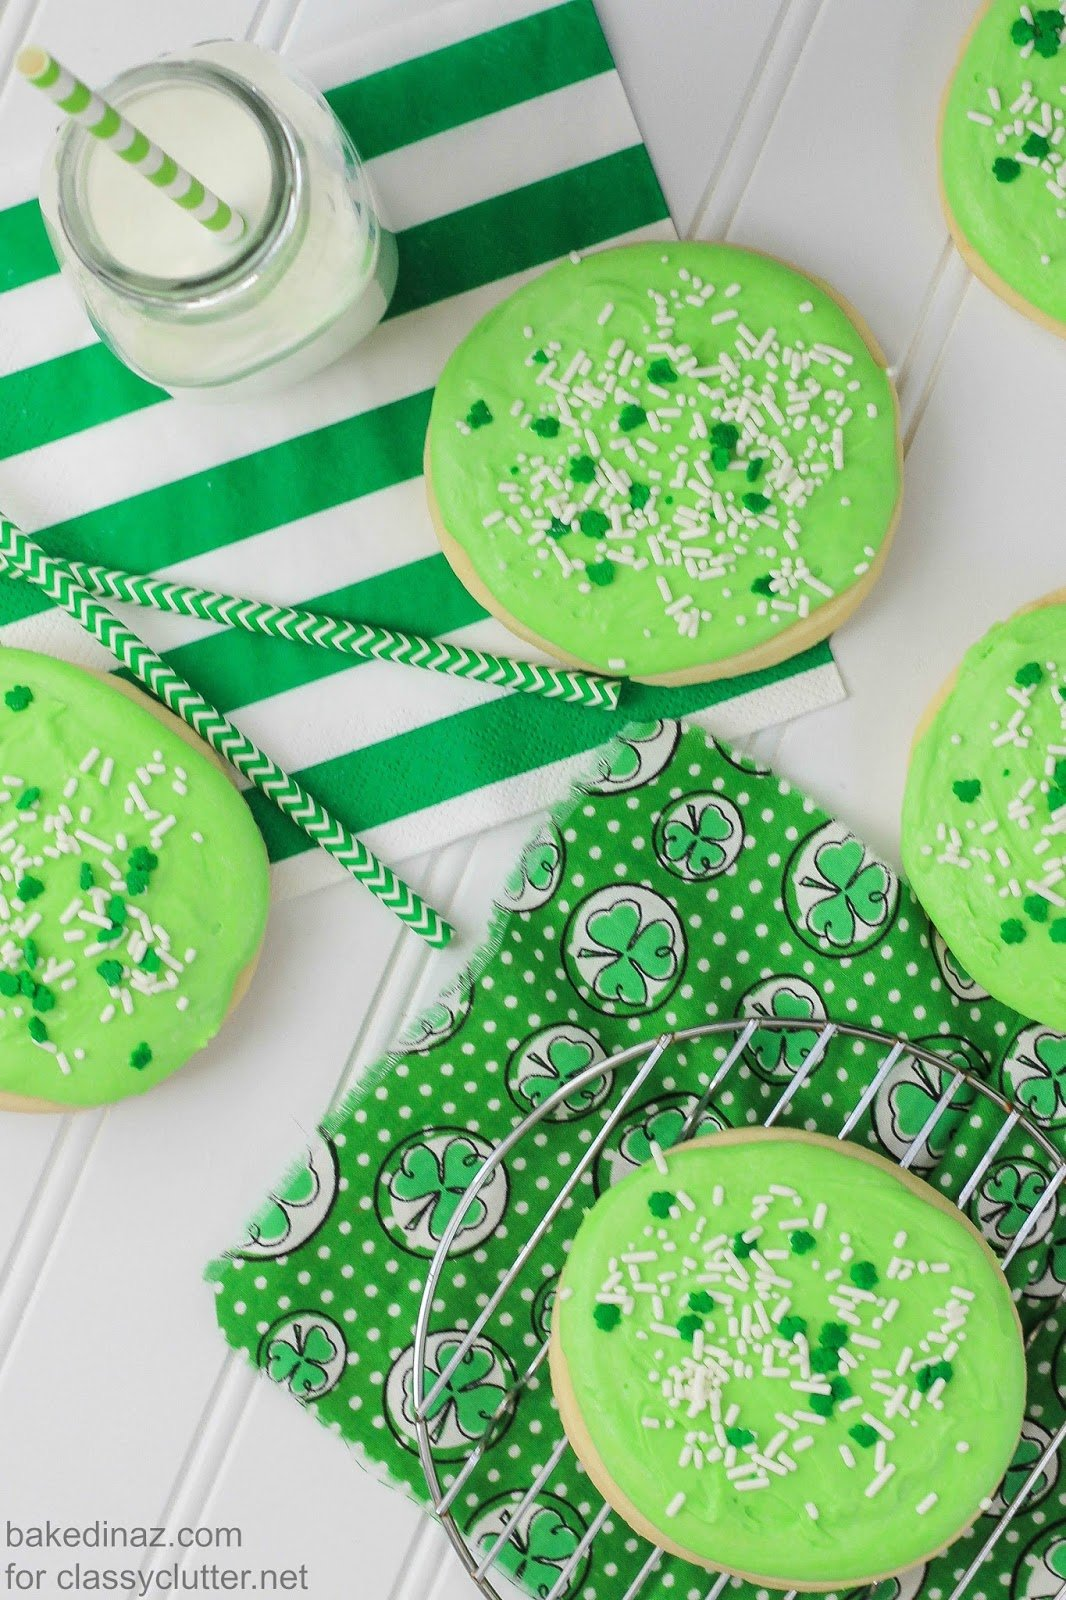 Sugar Cookies covered in green frosting and sprinkles